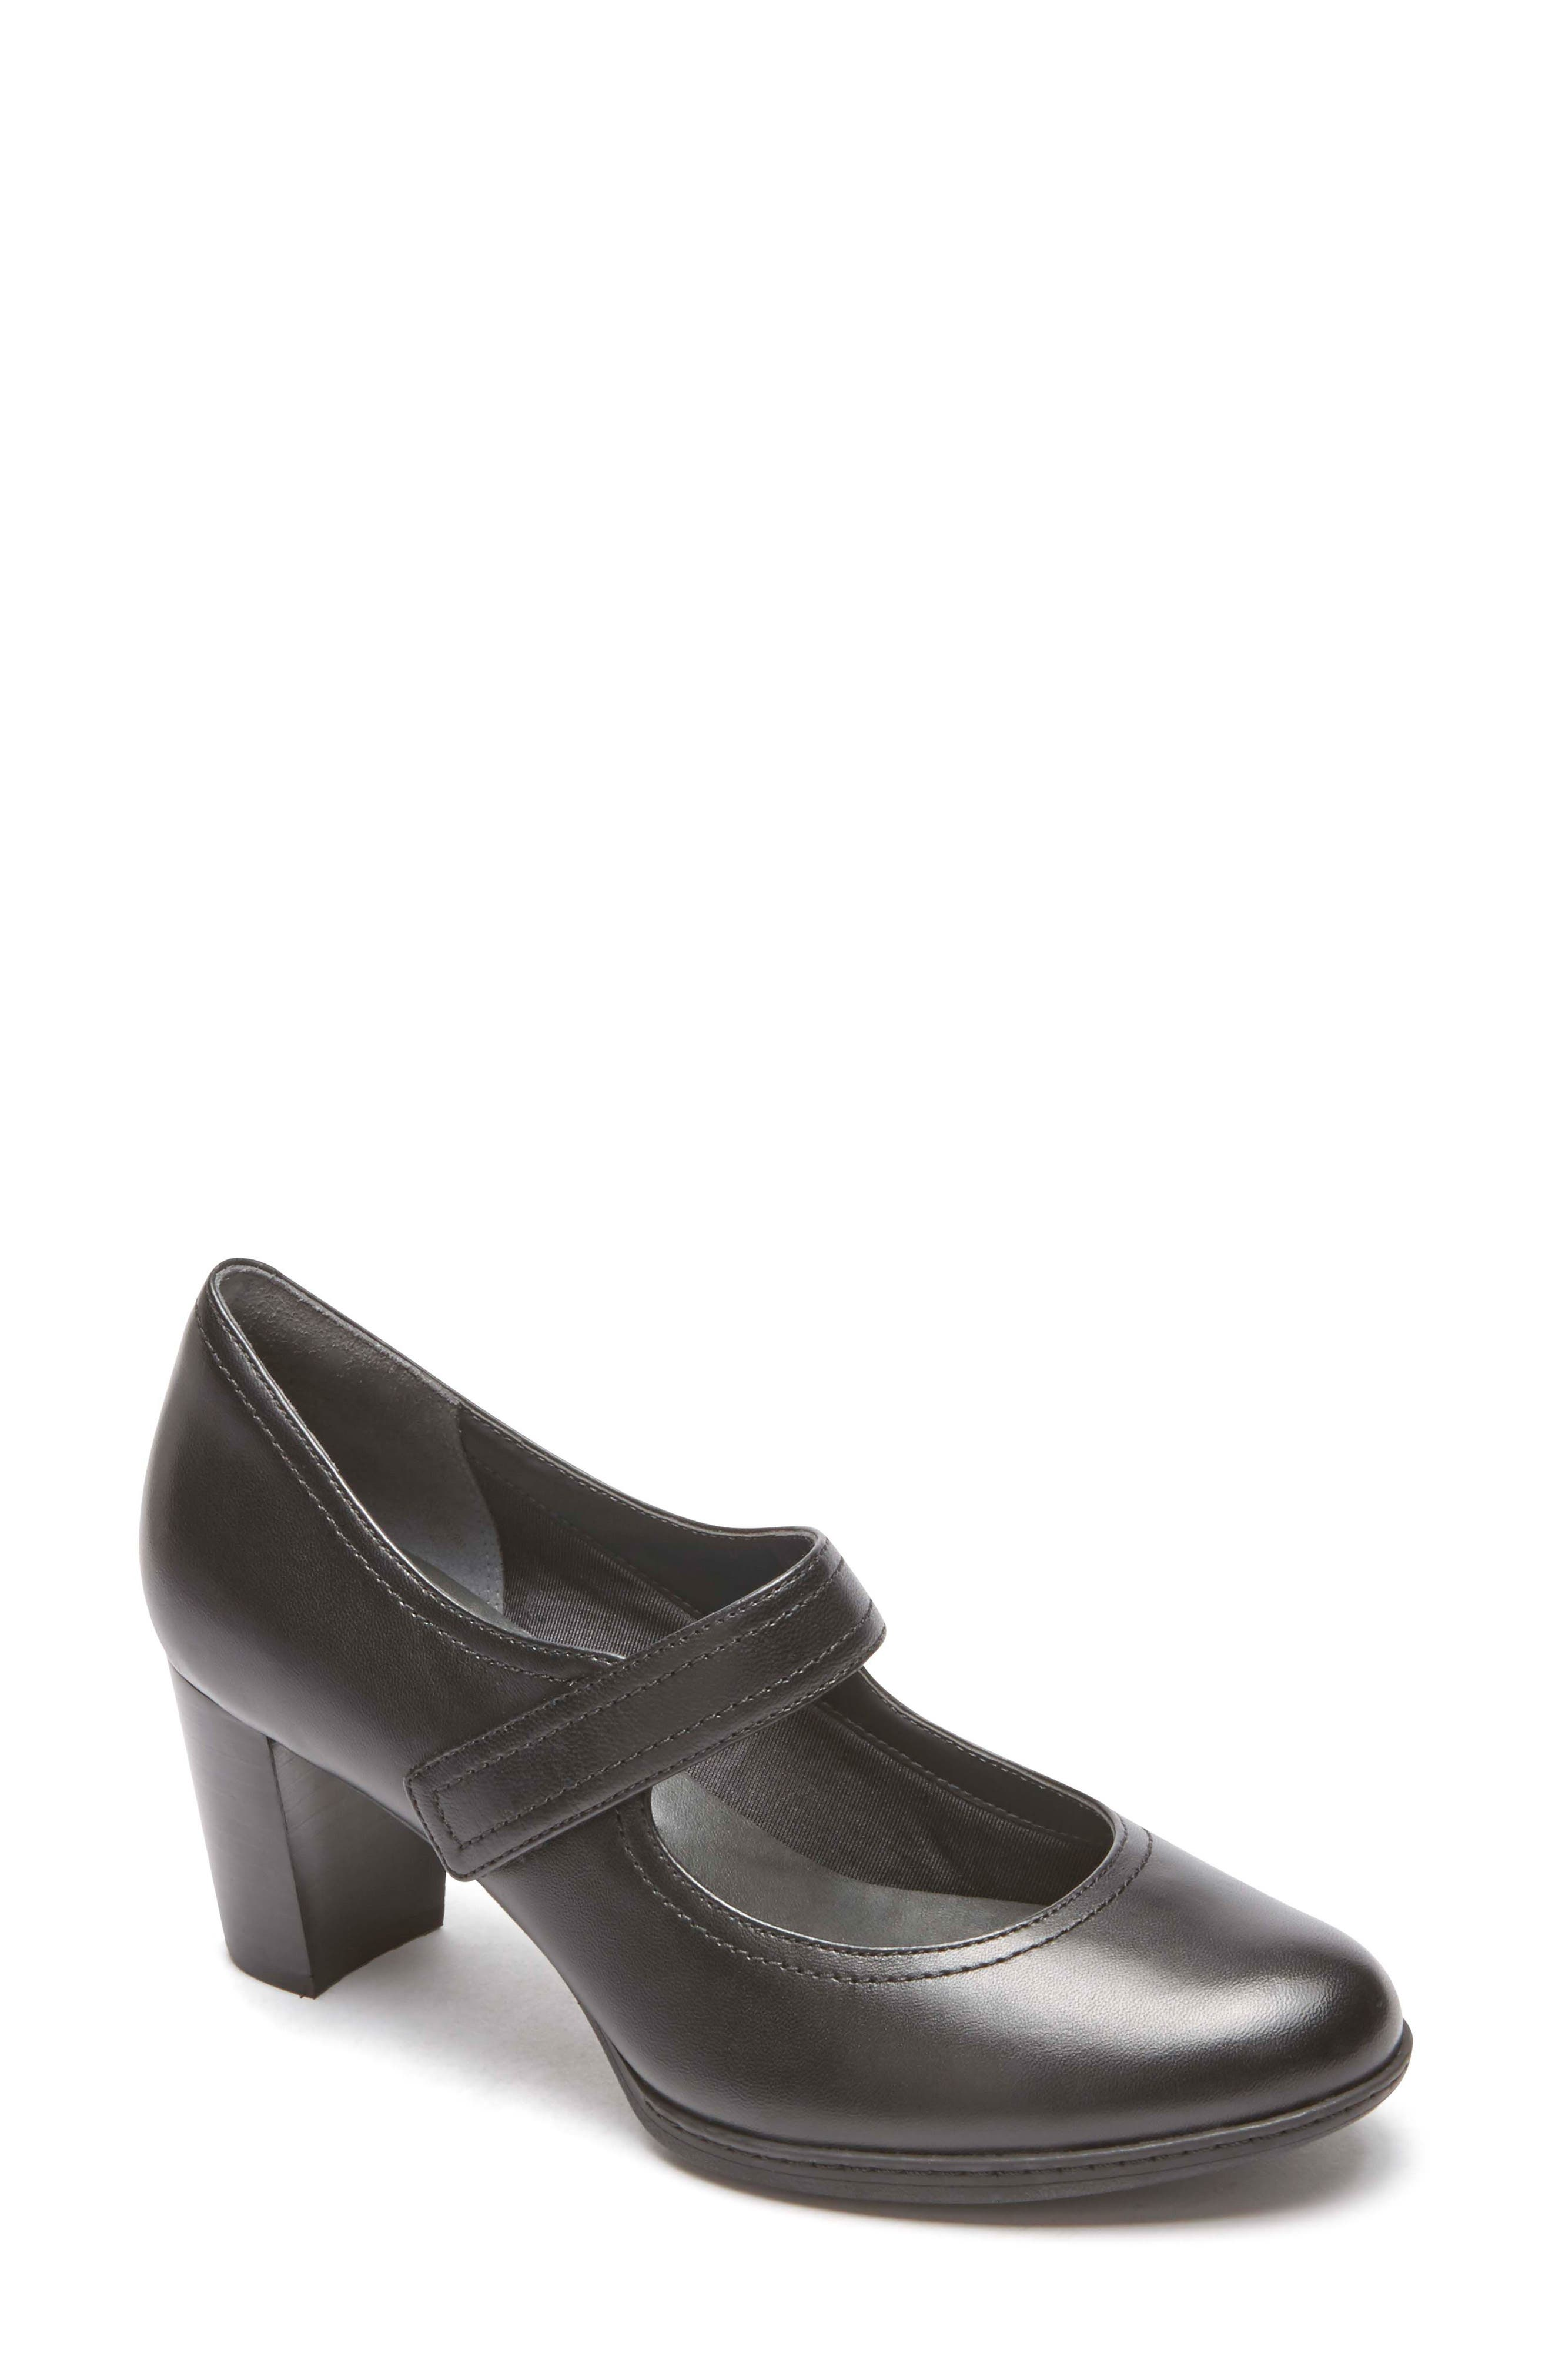 Chaya Mary Jane Pump,                         Main,                         color, BLACK LEATHER